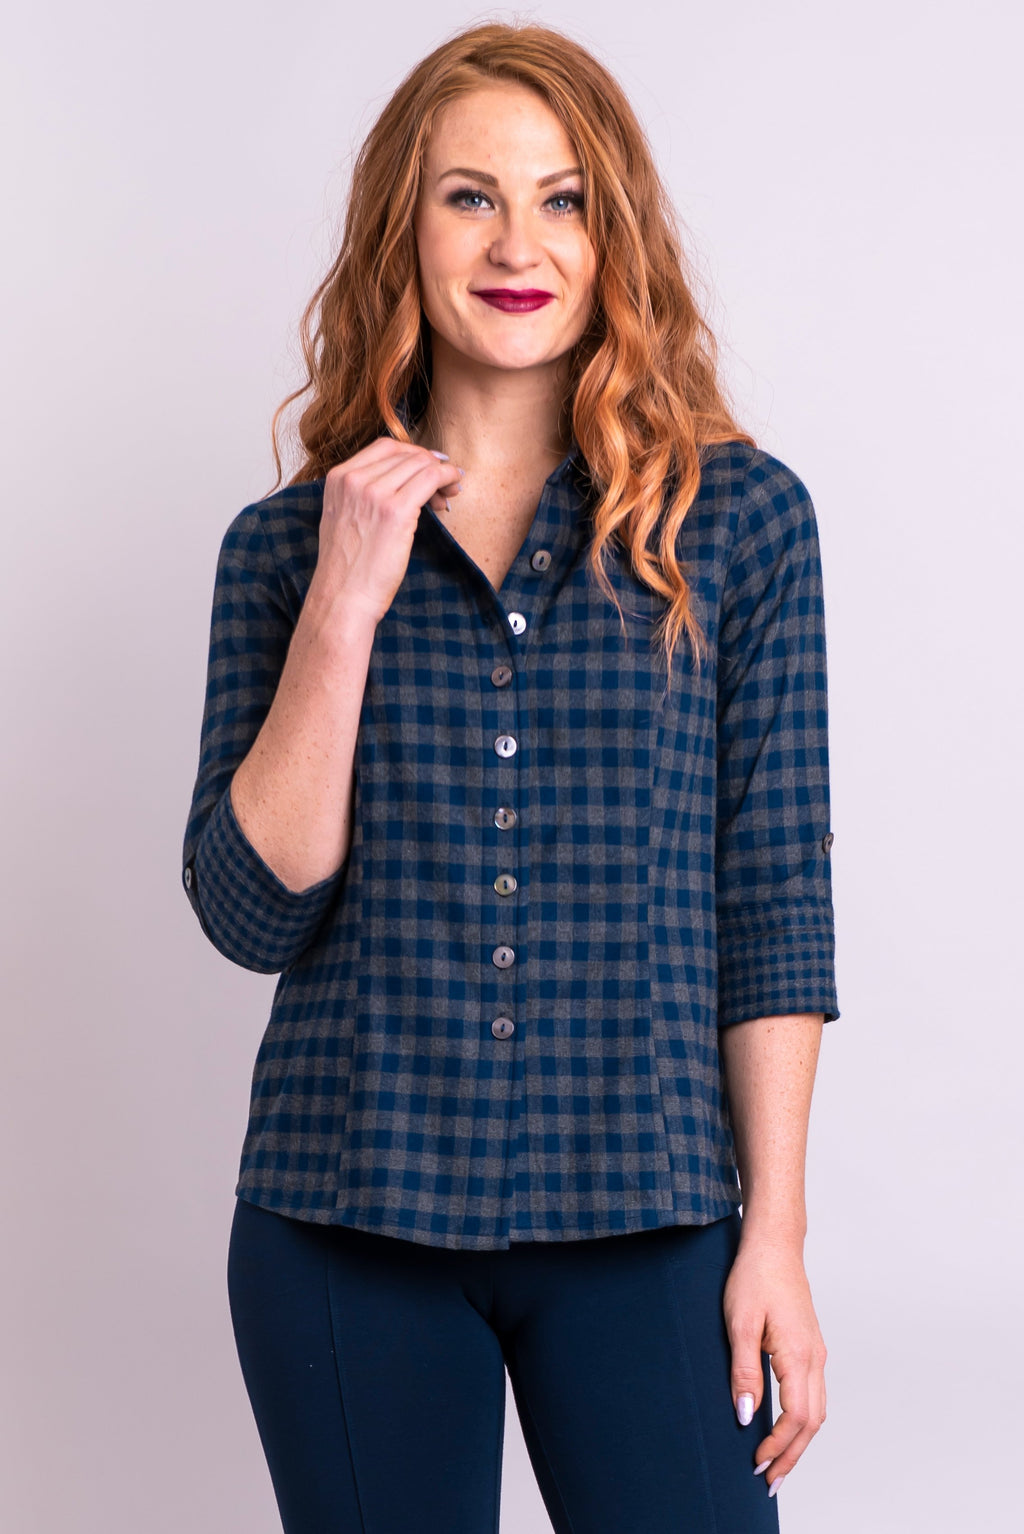 Marley Top, Indigo Plaid, Cotton Flannel - Blue Sky Clothing Co